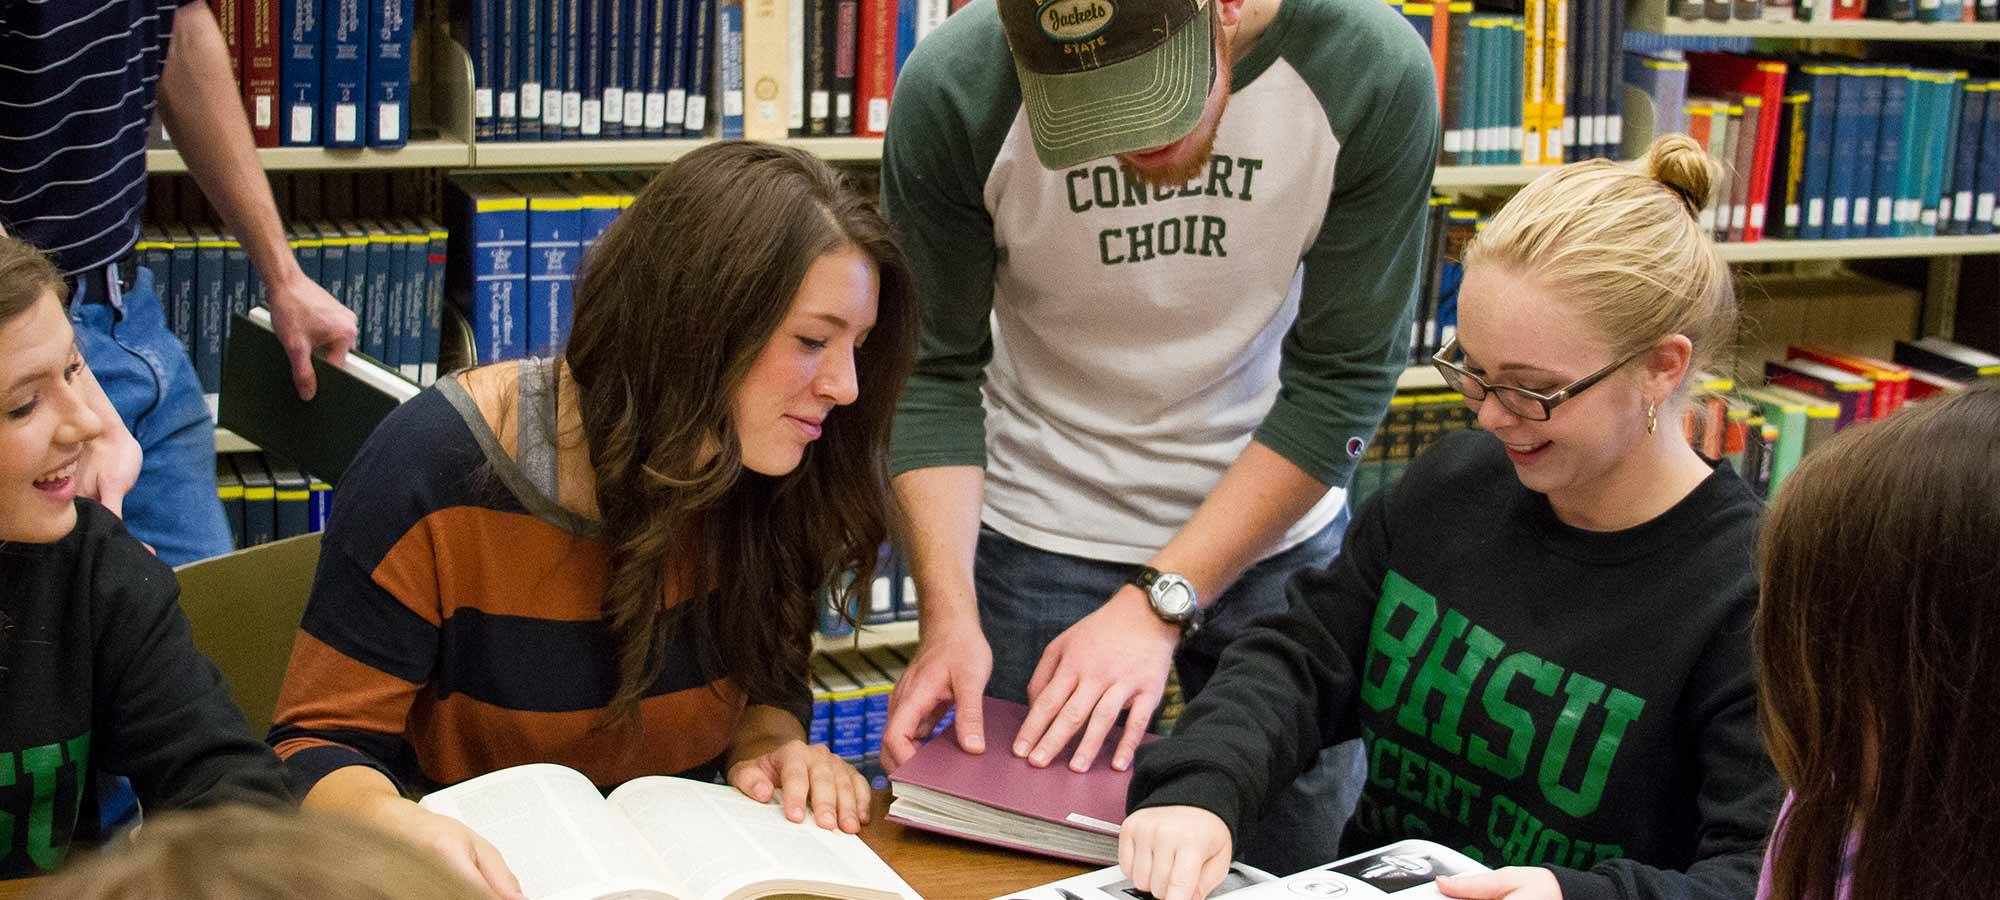 Search for classes at BHSU.